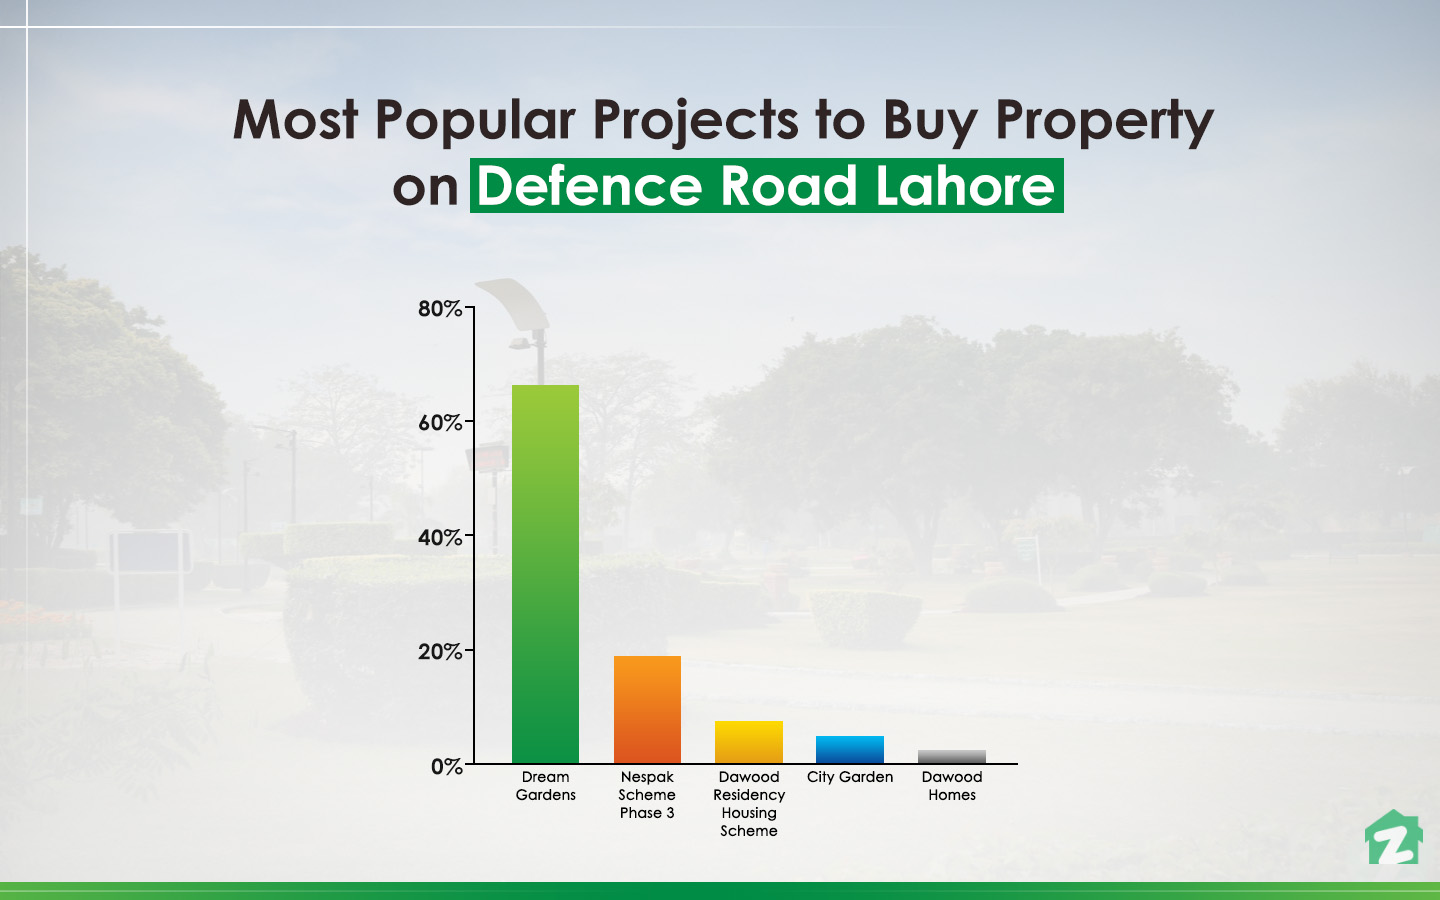 popular projects on Defence Road Lahore to buy property